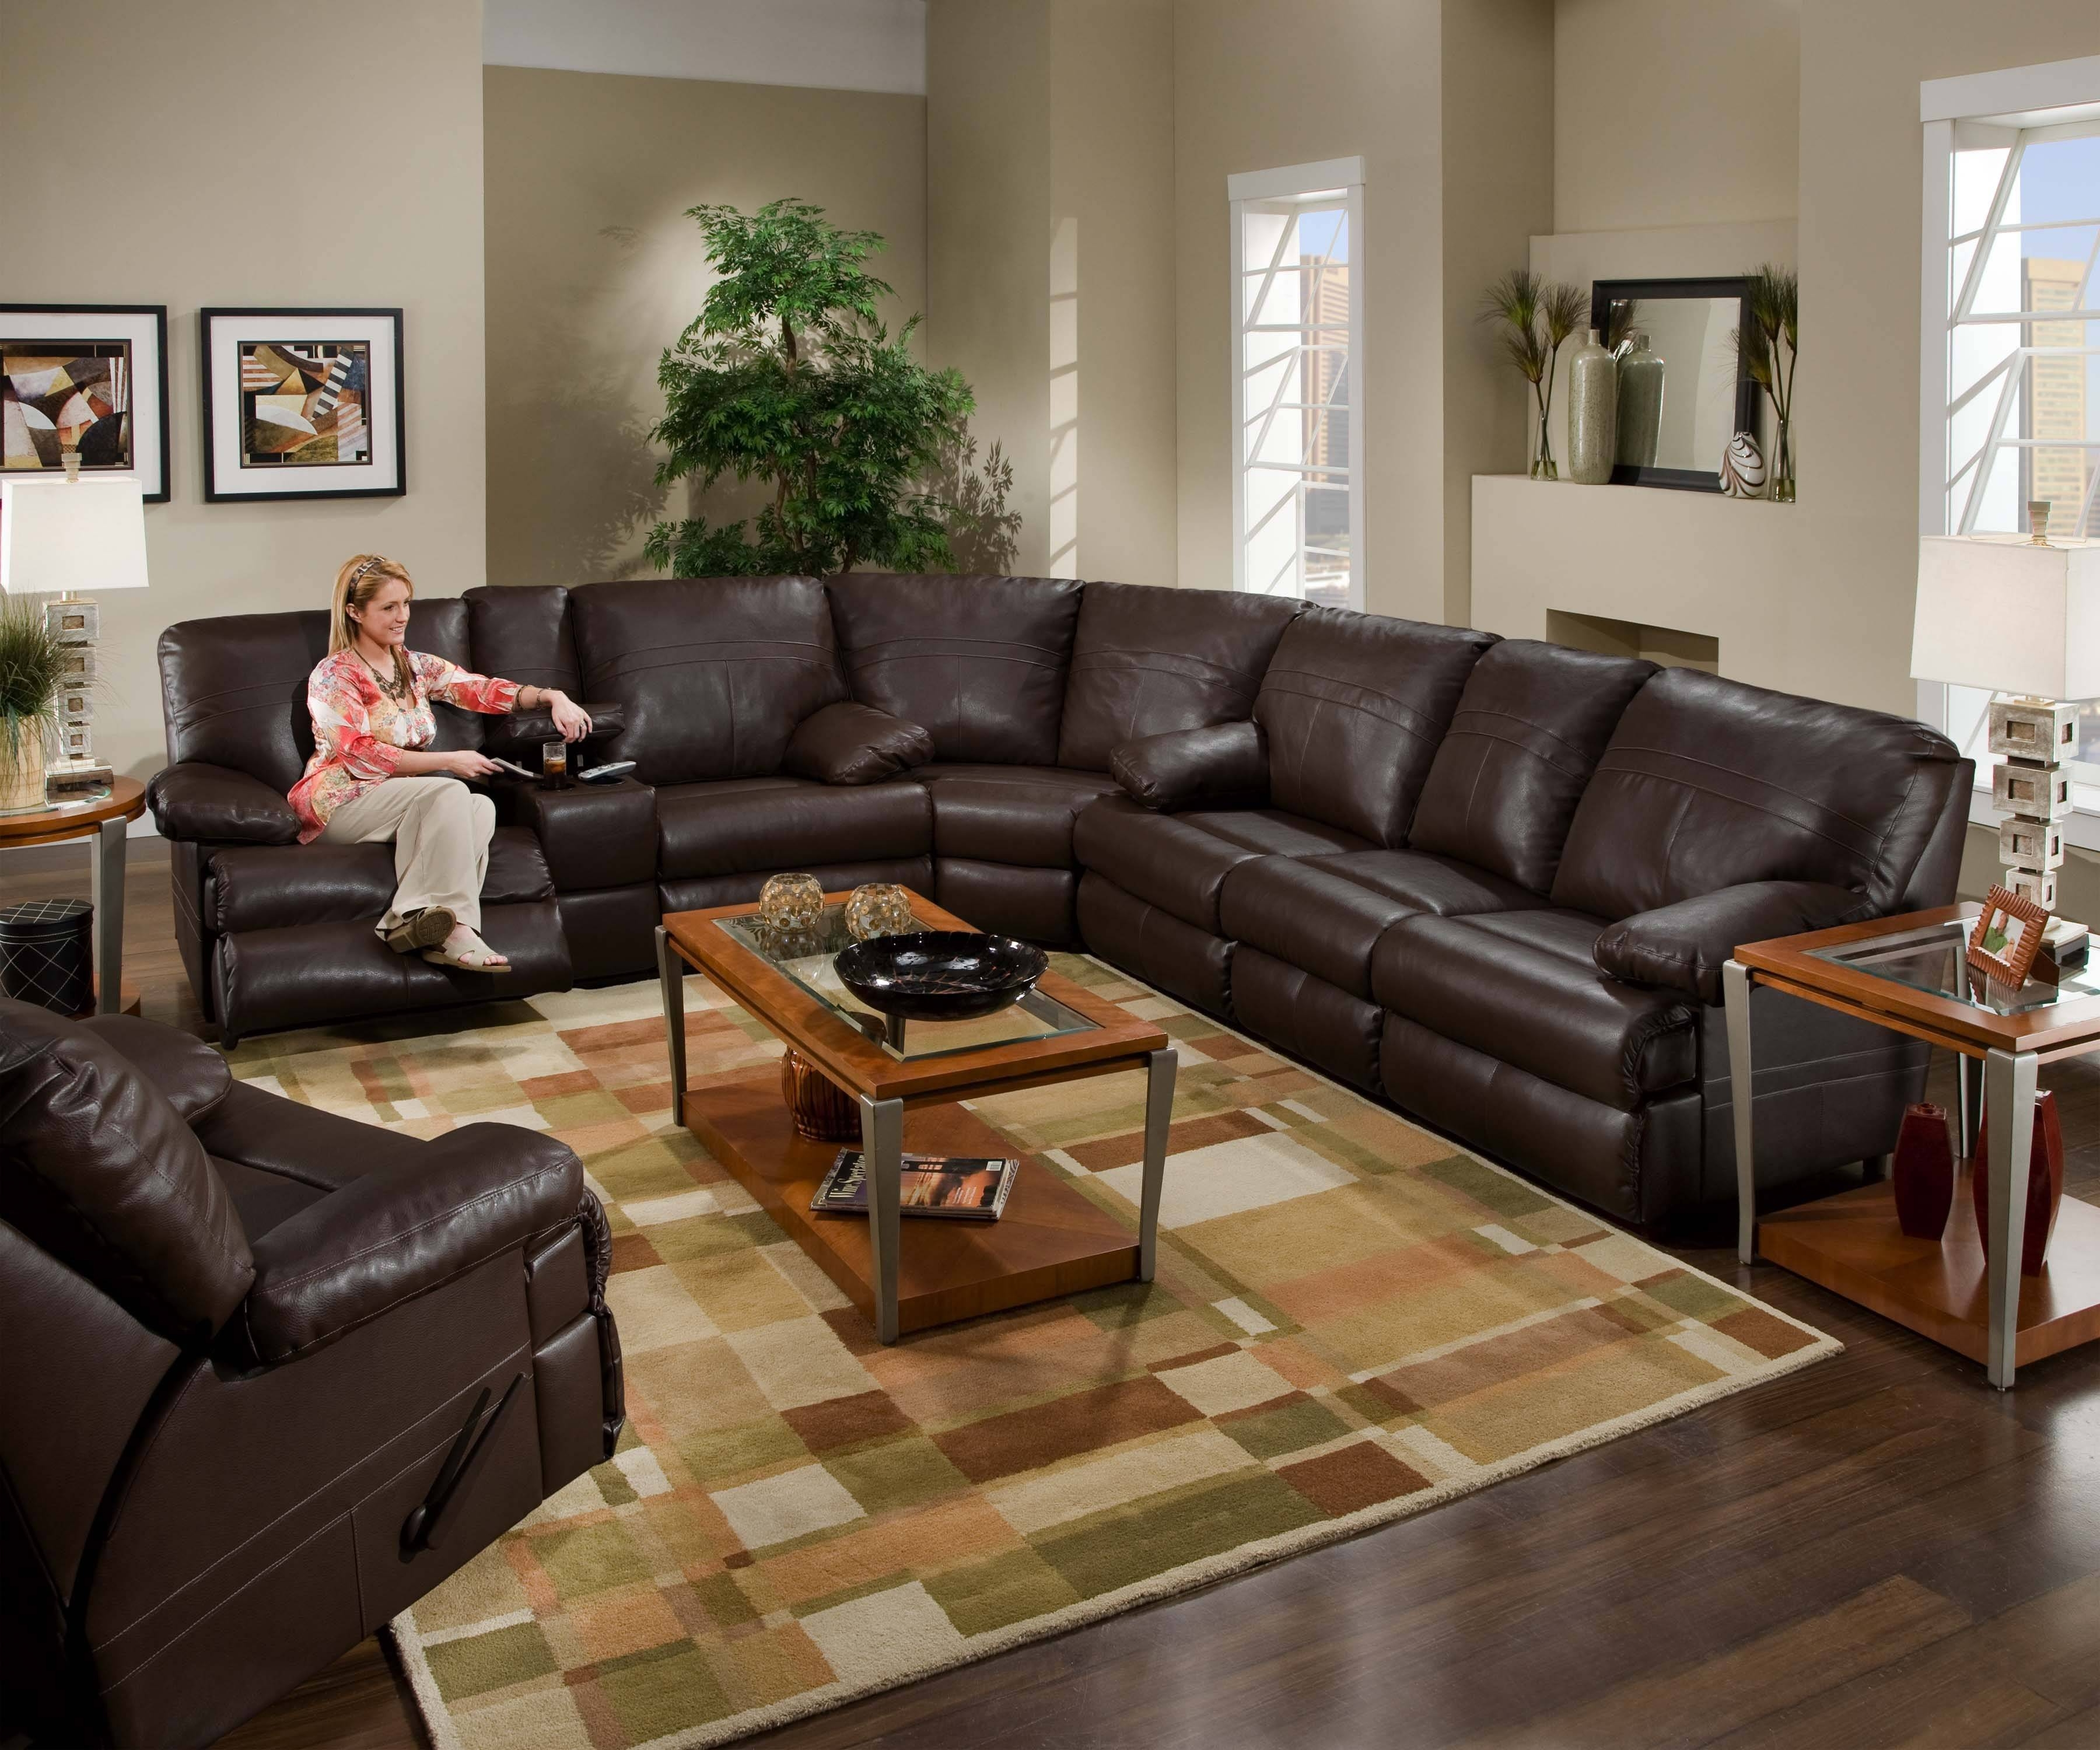 Sofas Center : Extraordinary L Shaped Sectional Sofa With Recliner inside Leather L Shaped Sectional Sofas (Image 29 of 30)